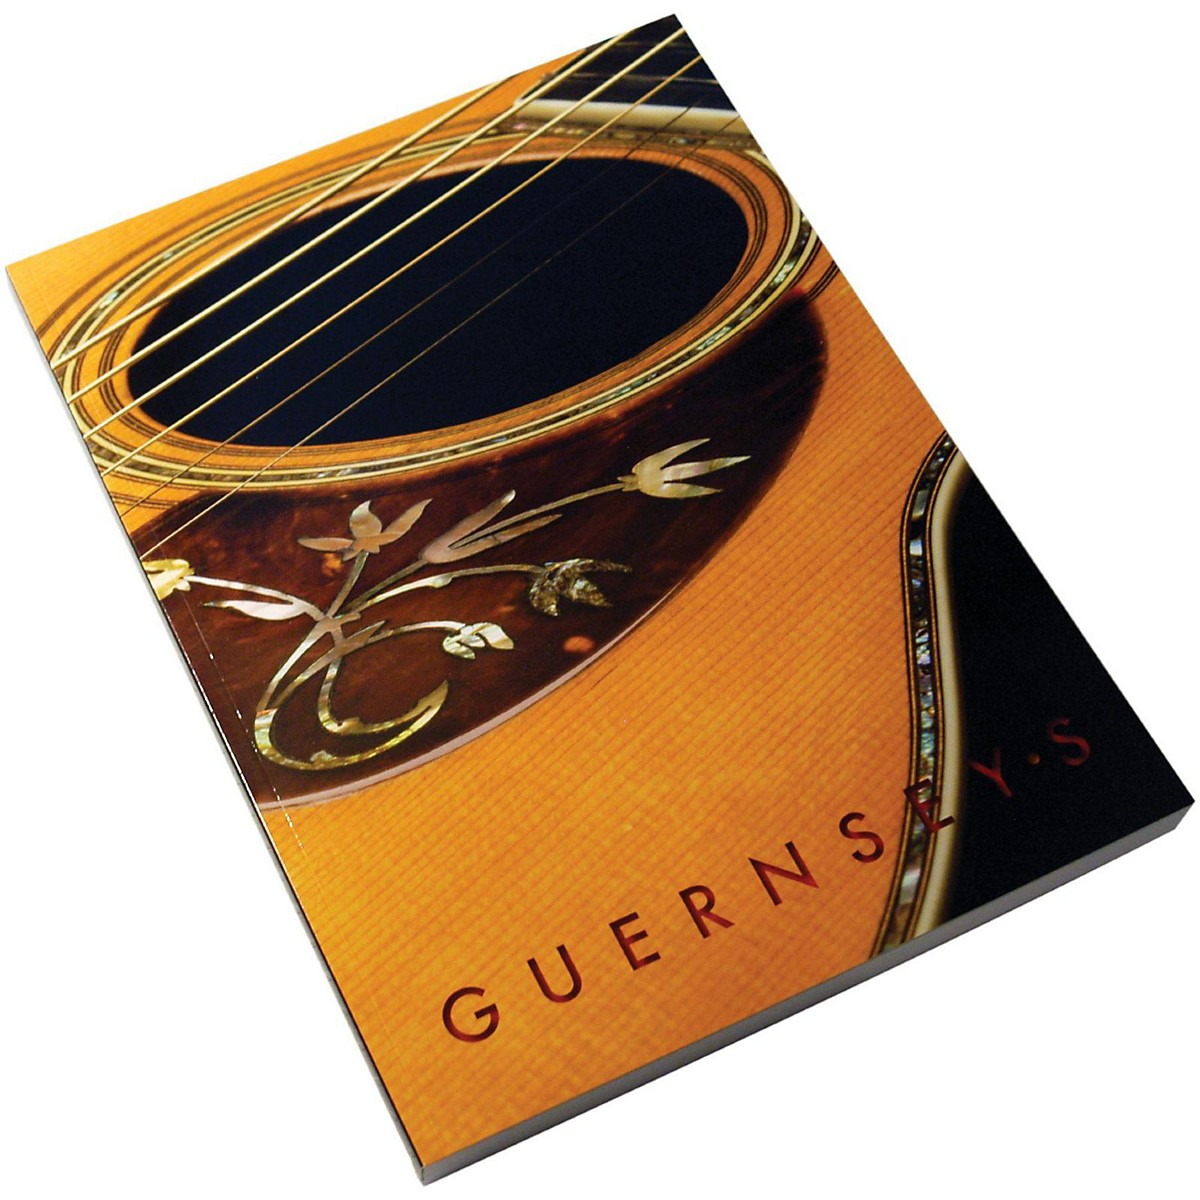 Guernsey's The Artistry of the Guitar Book